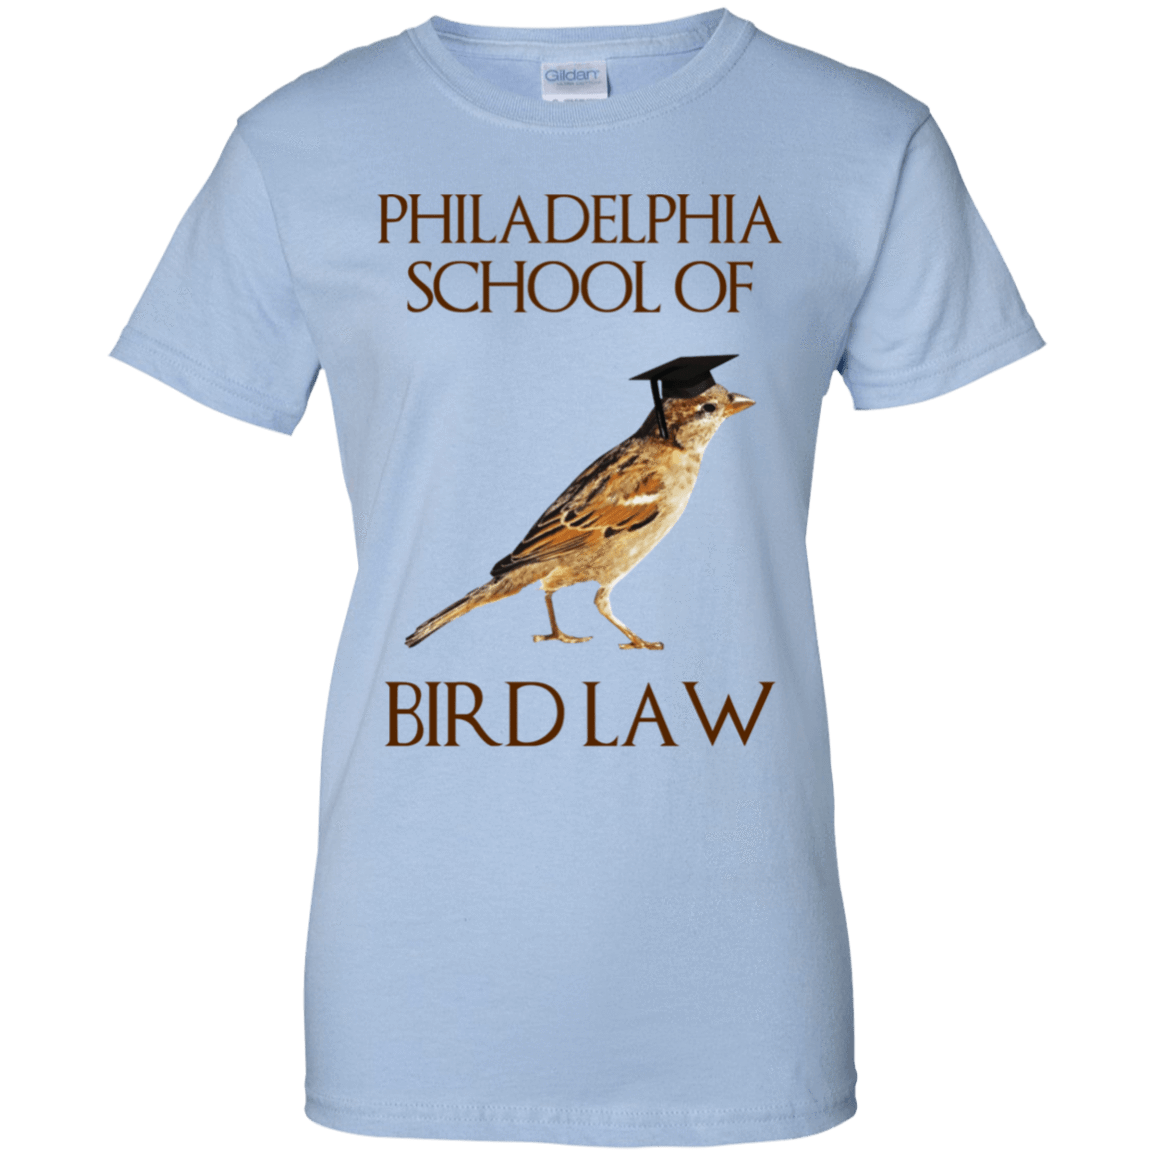 Philadelphia School of Bird Law 939-9257-73057596-44716 - Tee Ript